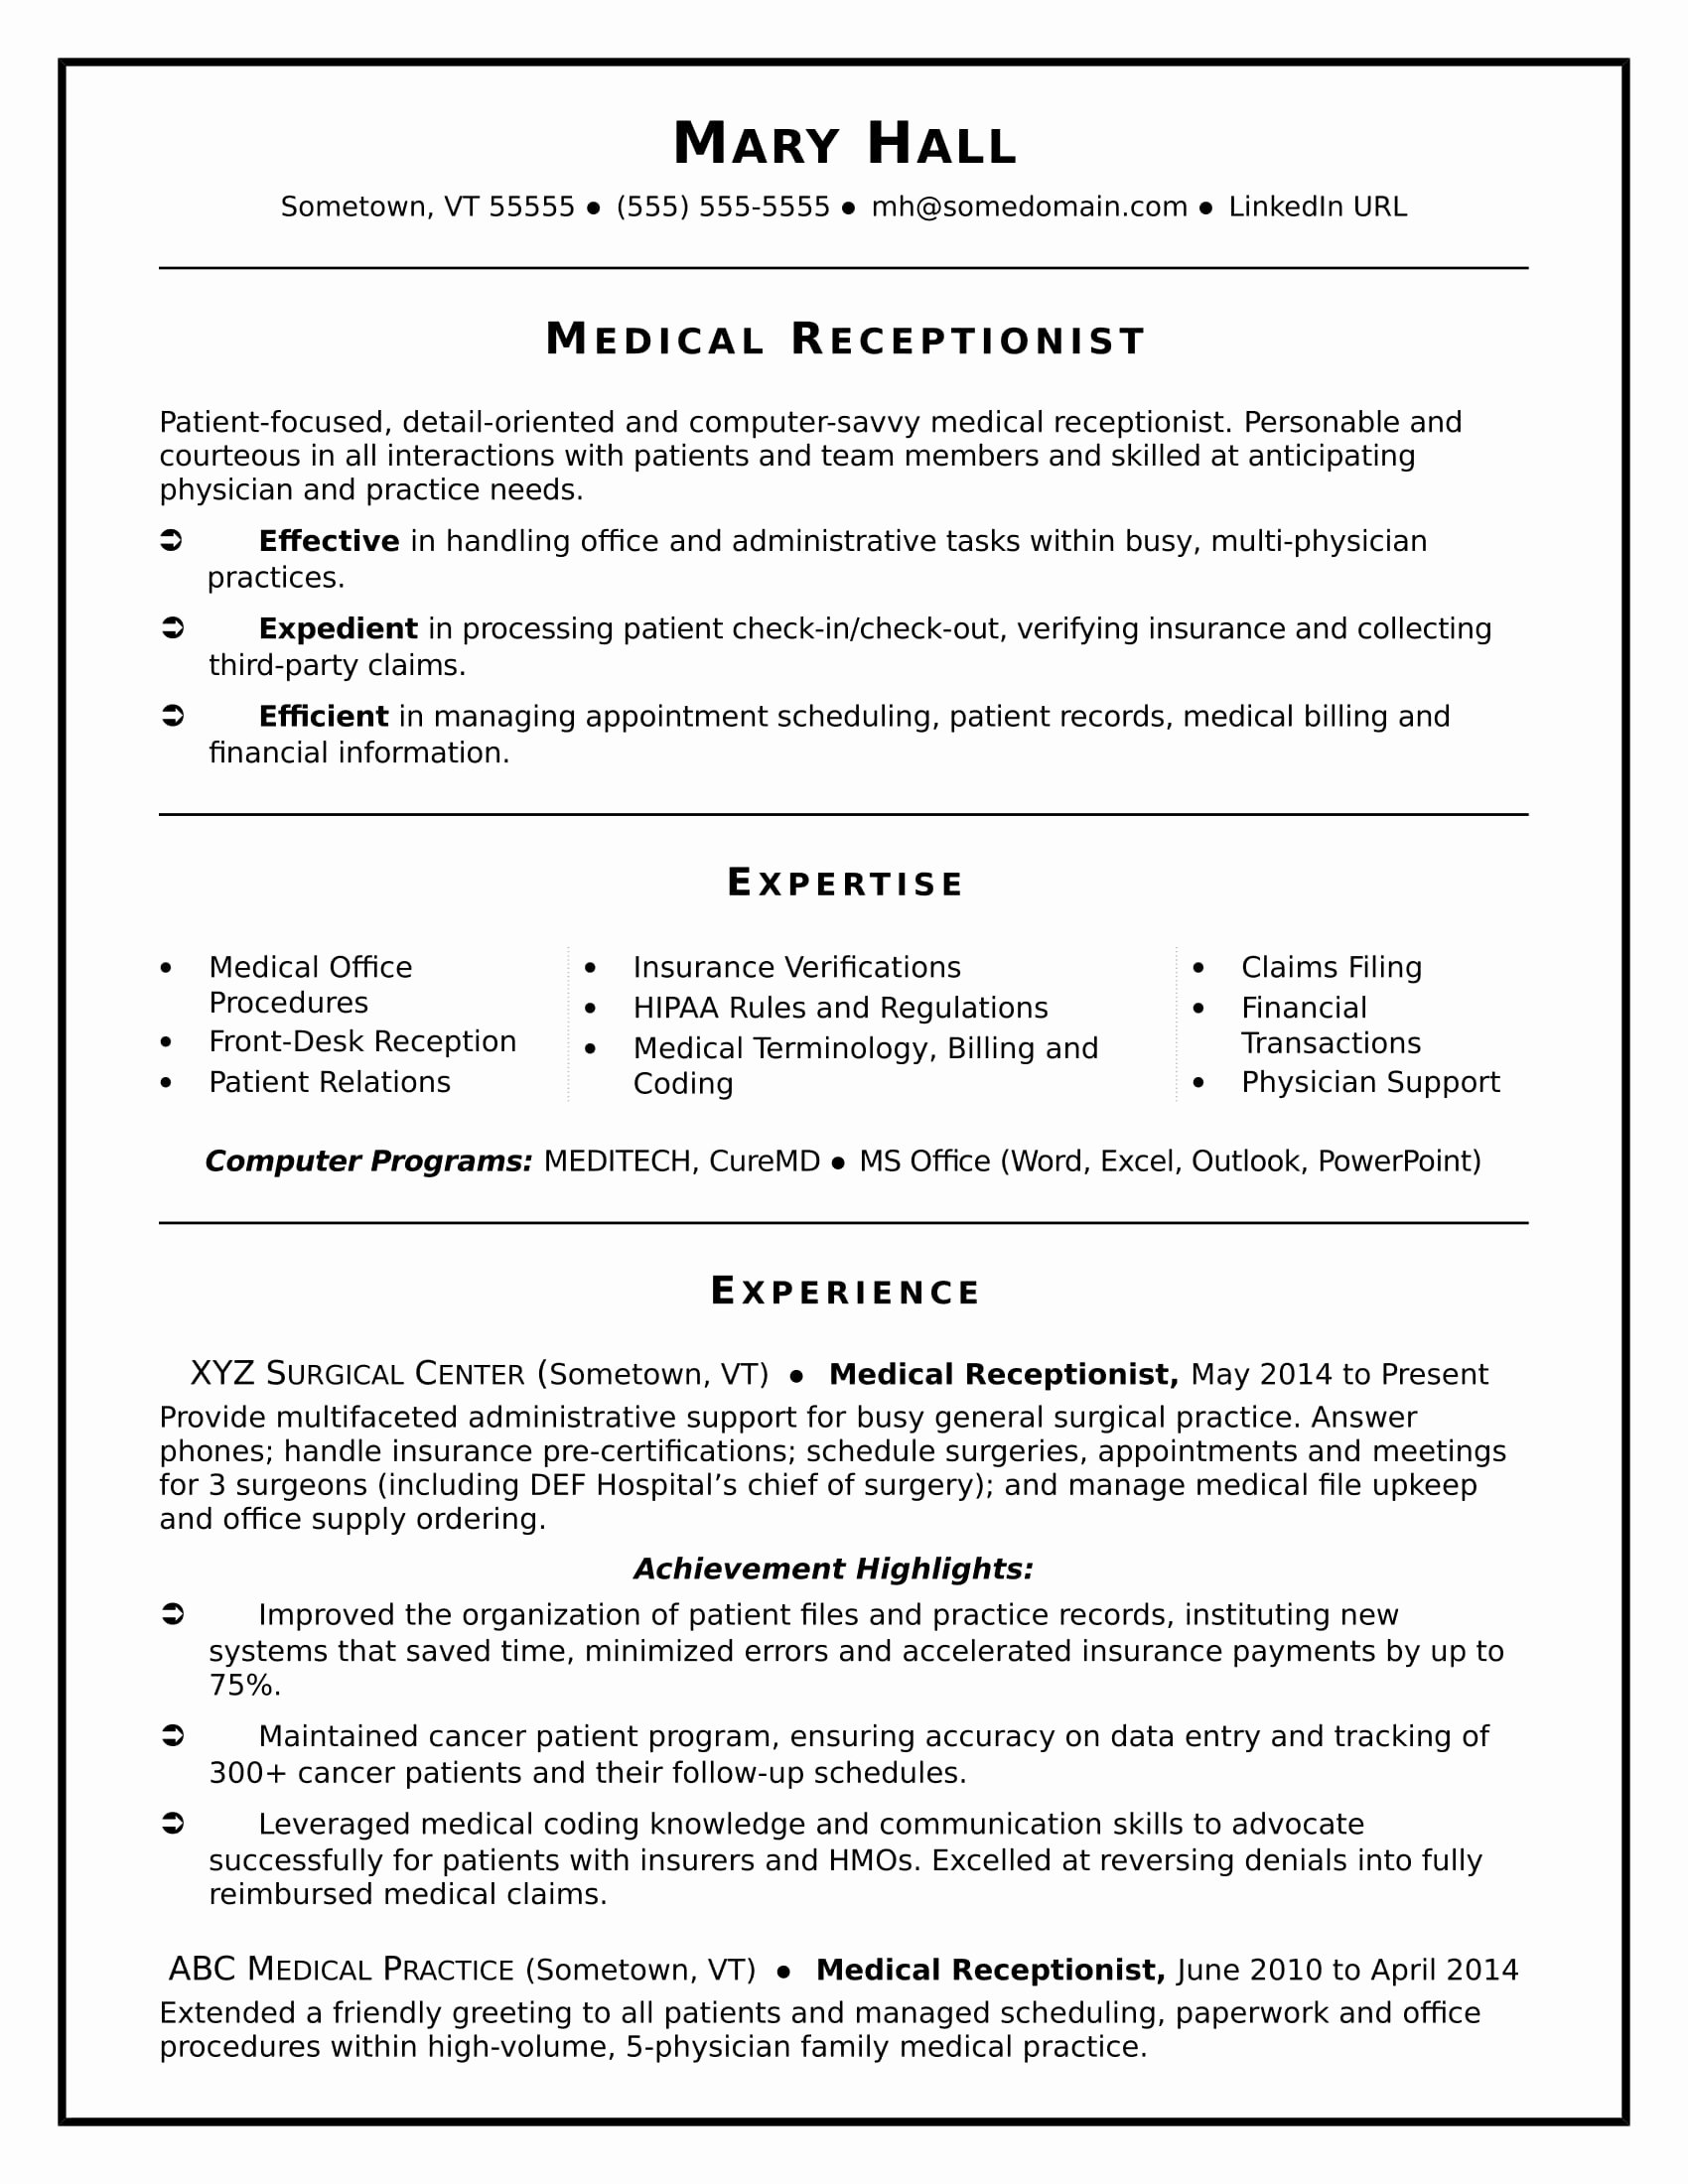 Medical Receptionist Resume Sample